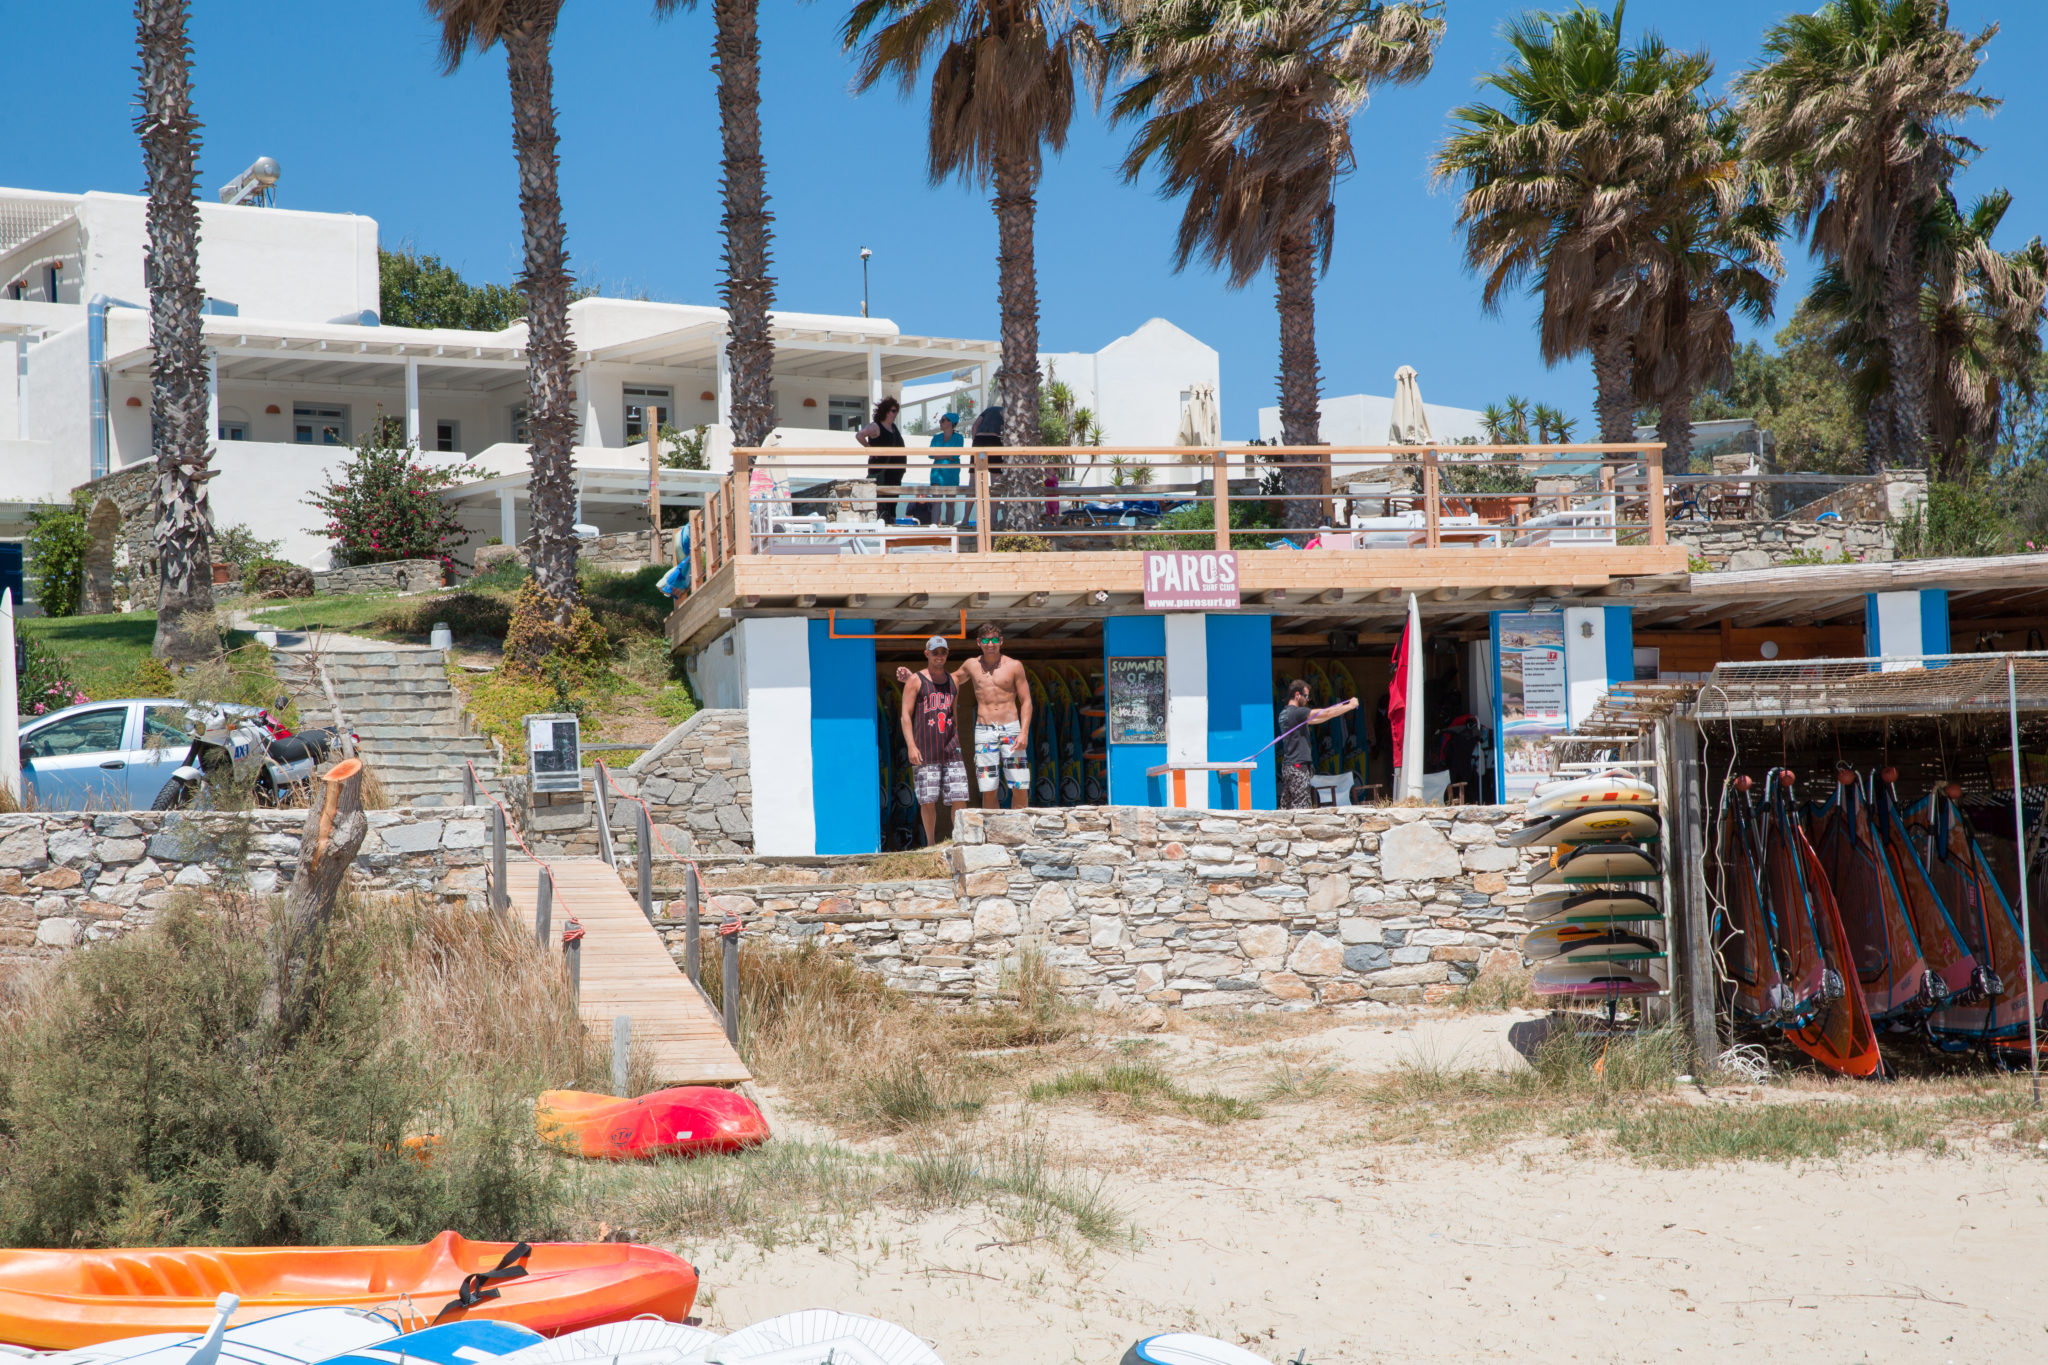 Friends Paros surf club